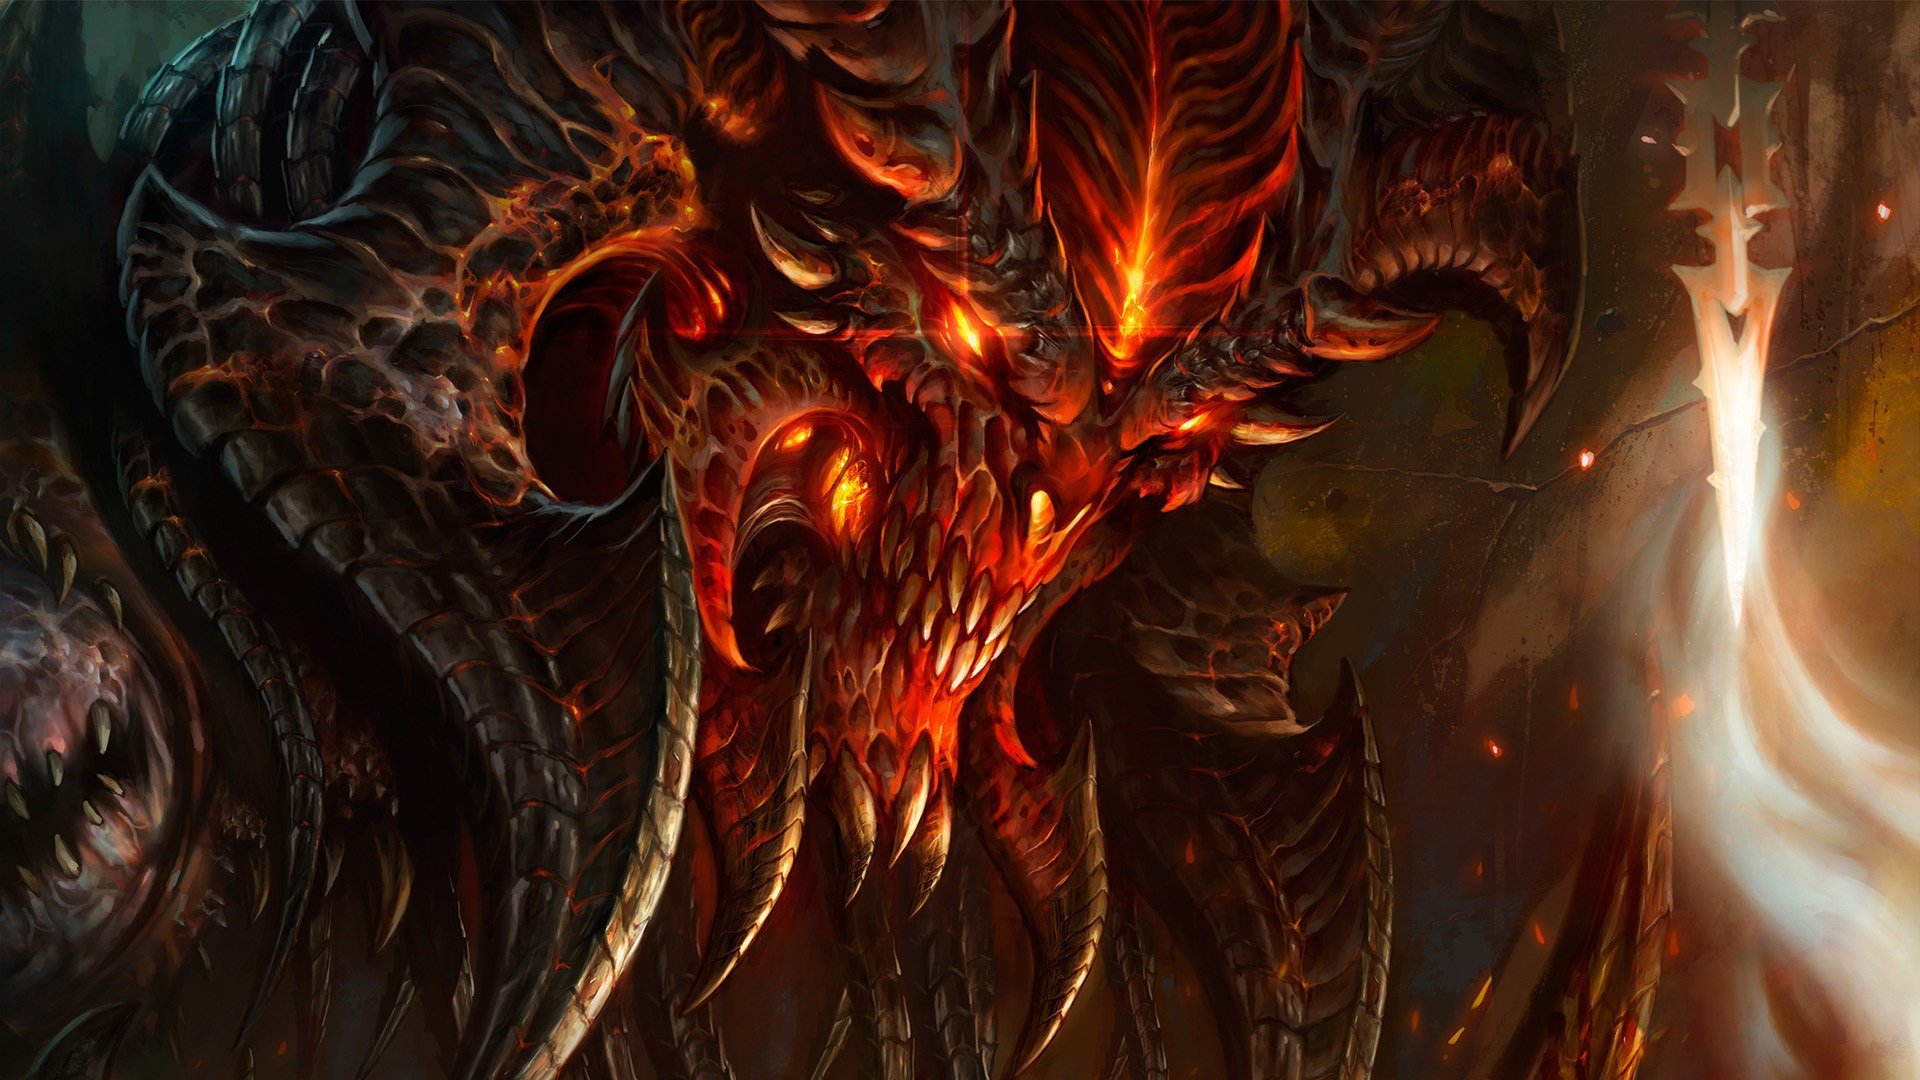 Diablo: Reign of Terror Merch Has Nothing to Do with New Games or Announcements, Says Blizzard